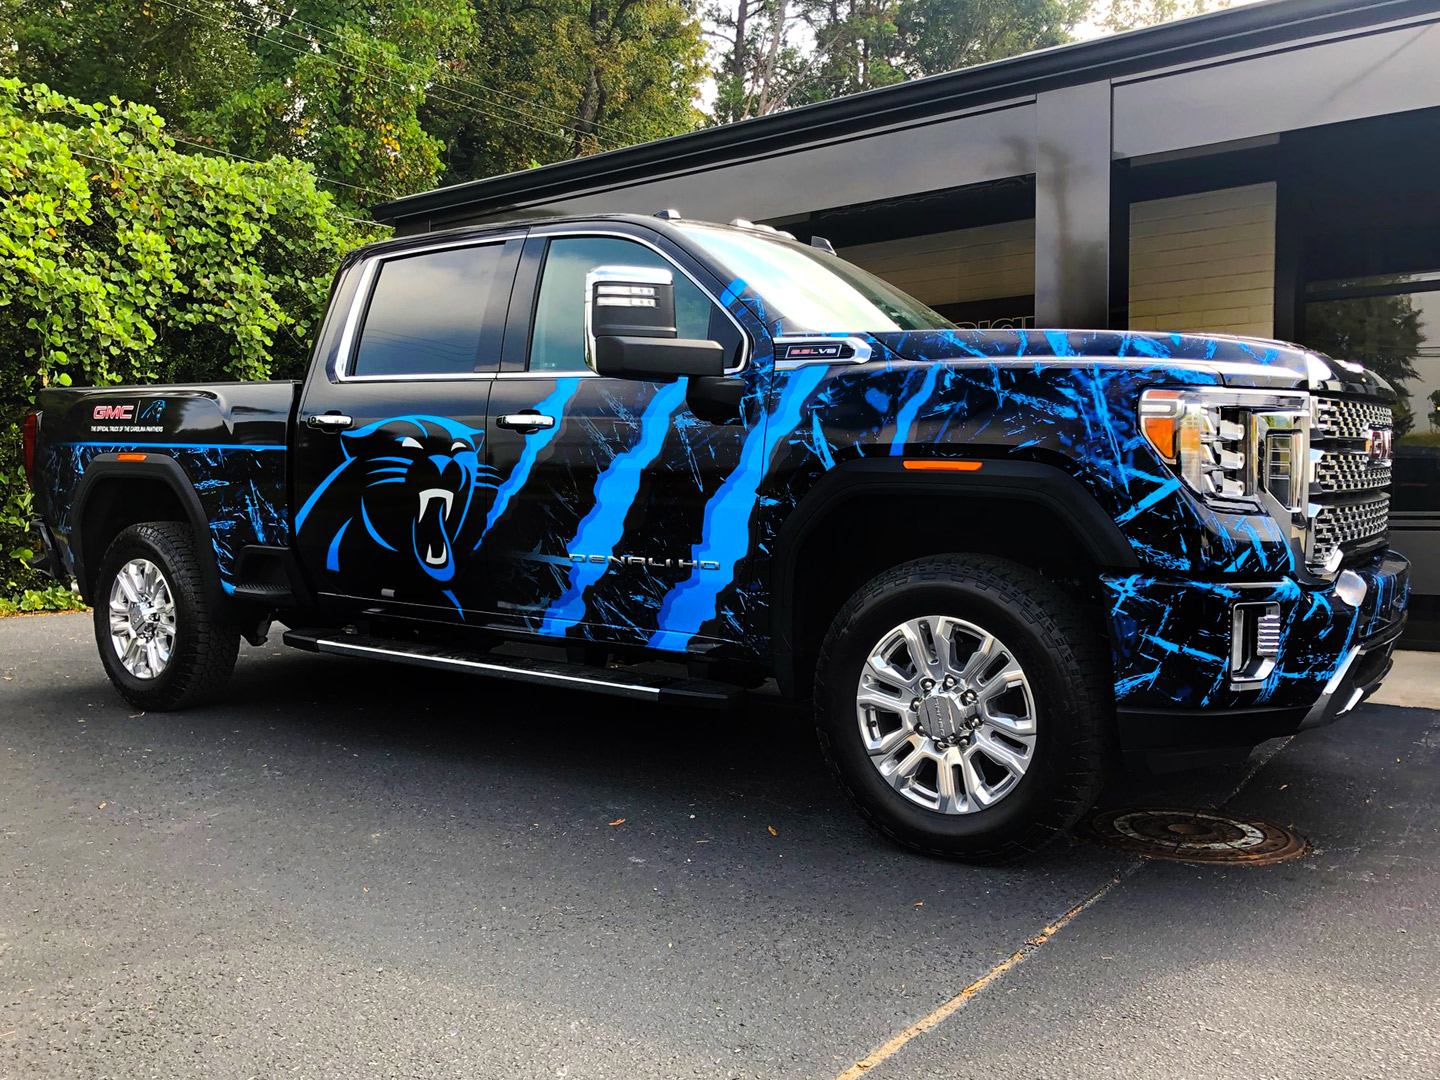 Pickup truck wrapped with sports graphics.